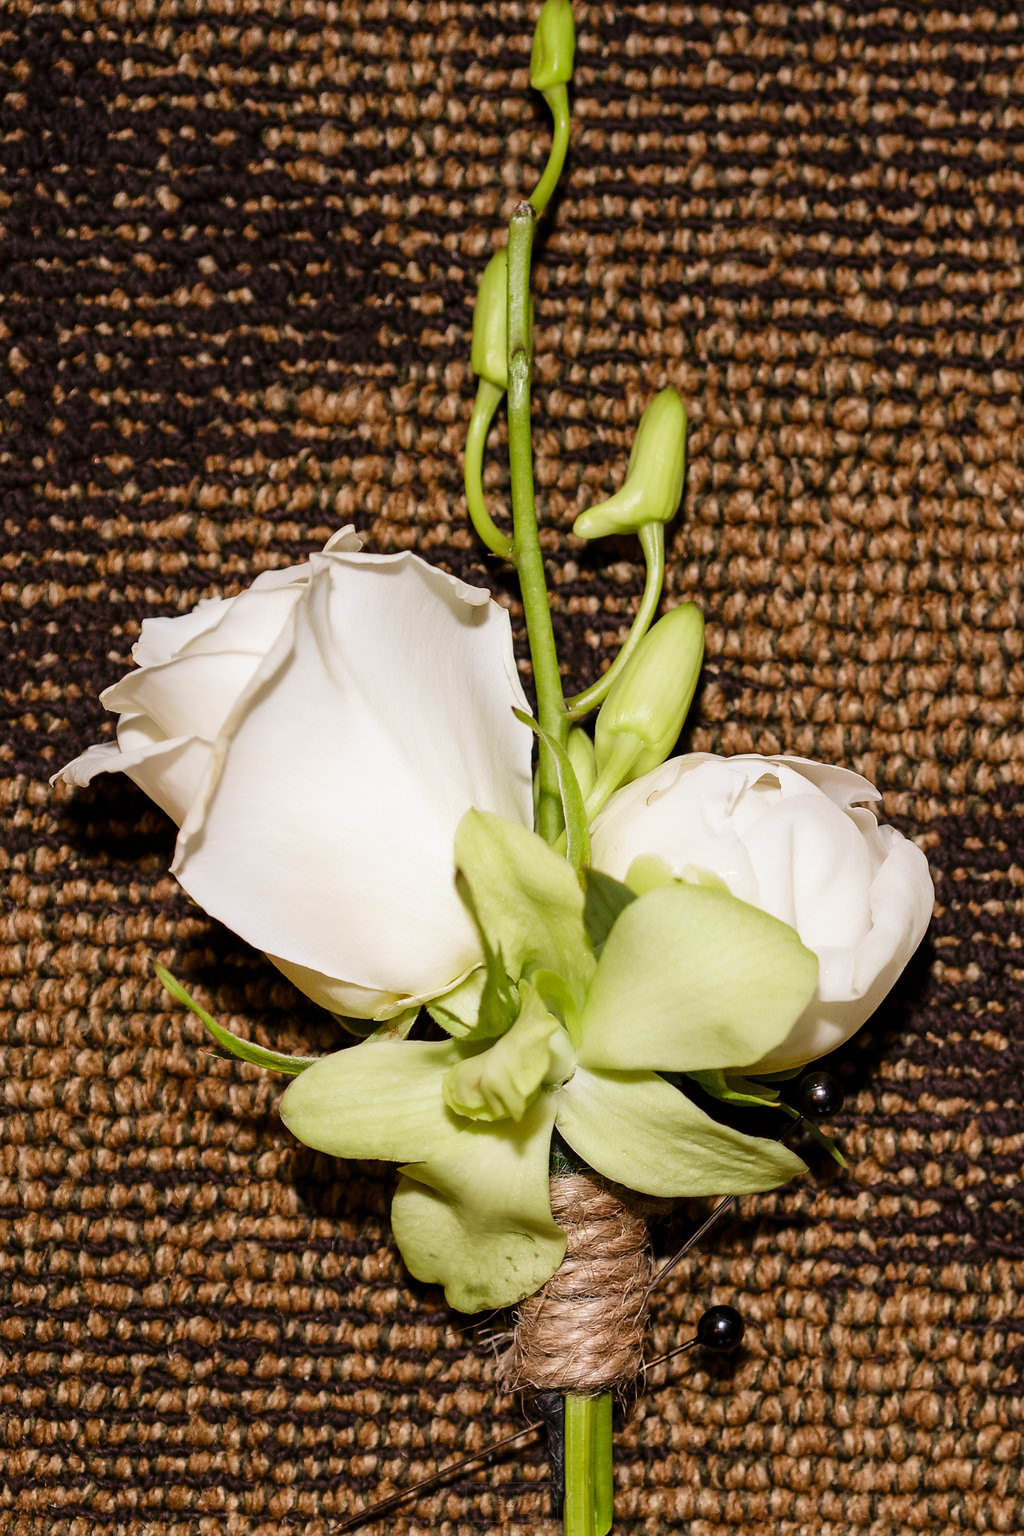 20 White Rose Peony Green Orchid Corsage Natural Theme Wedding Flowers.jpg